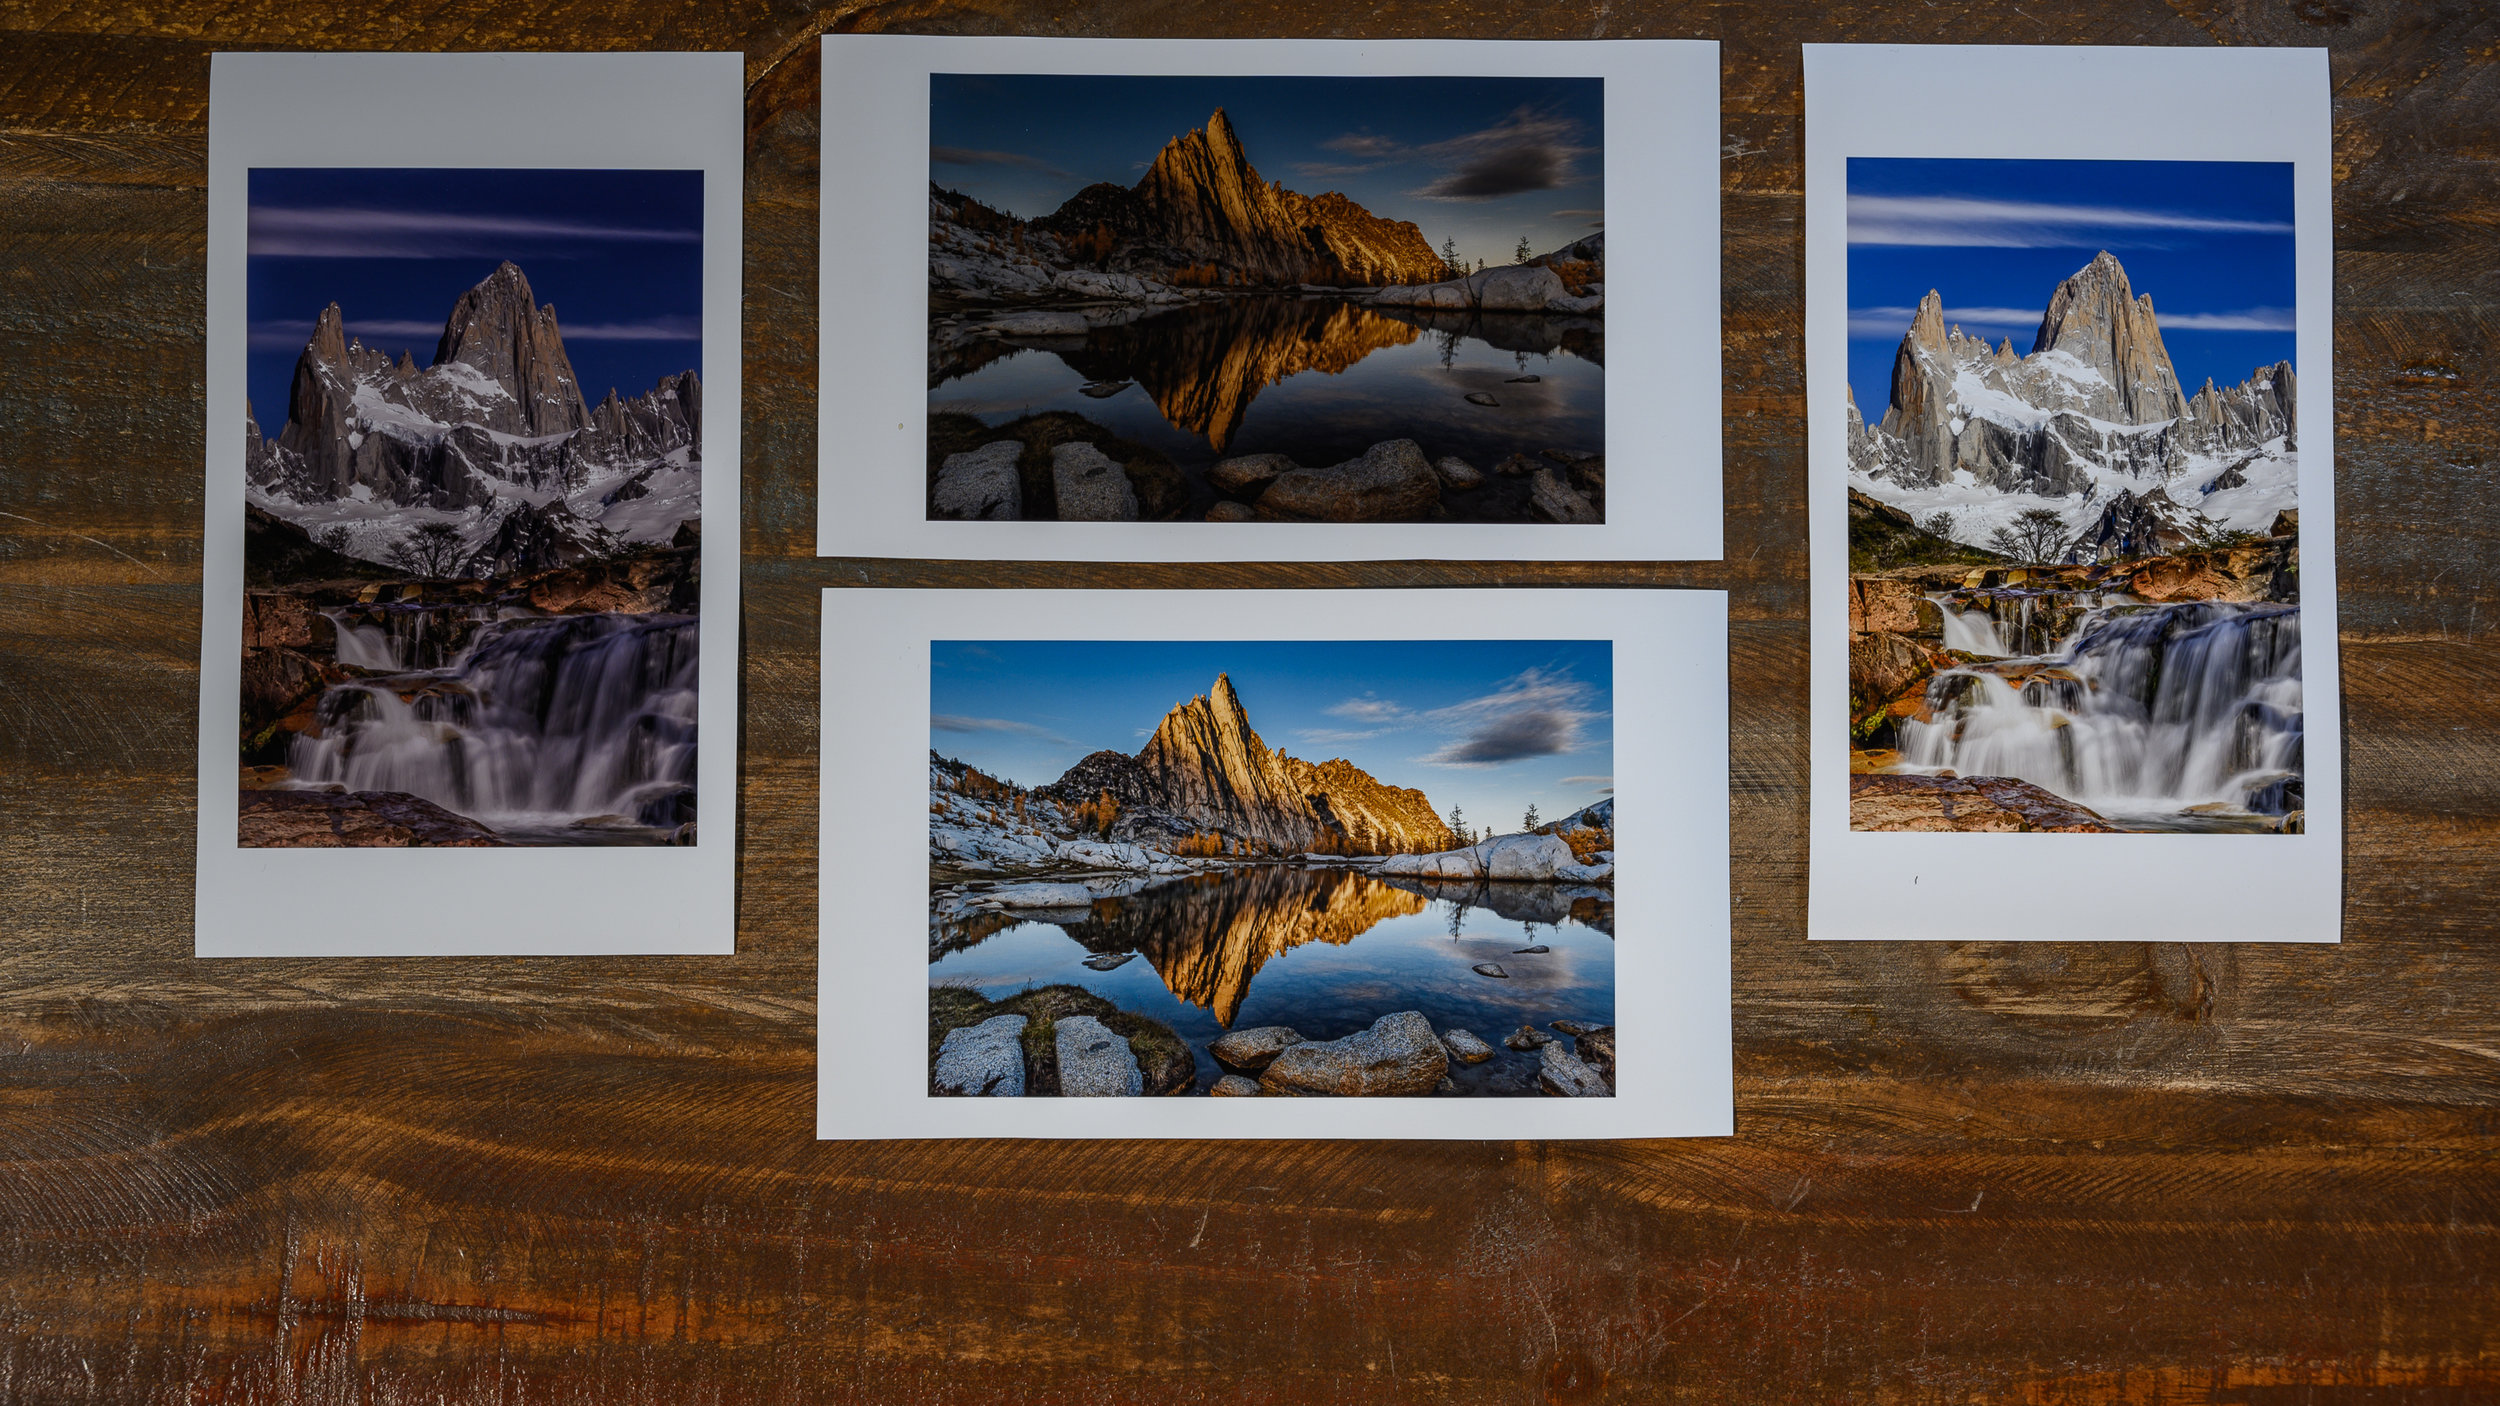 Studio / Editing - Tips for Better Looking PrintsFull HDR Edit and Pano EditsSharpening and Noise Reductionand more…